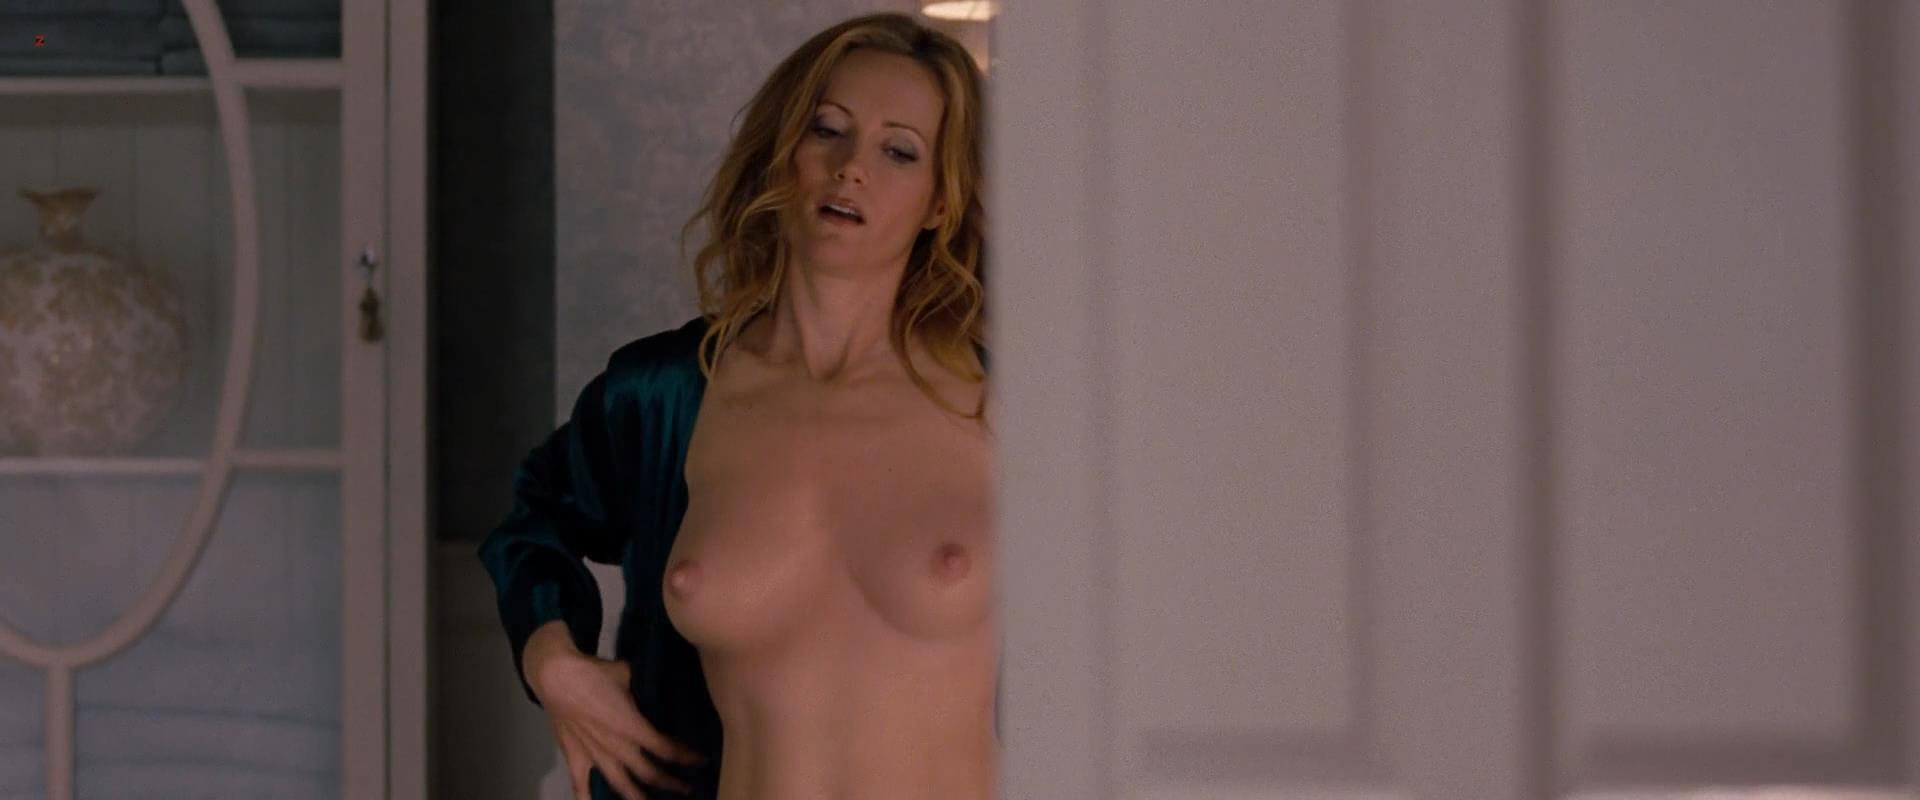 "Leslie Mann cgi topless in ""The Change Up"" (2011) video hd1080p"